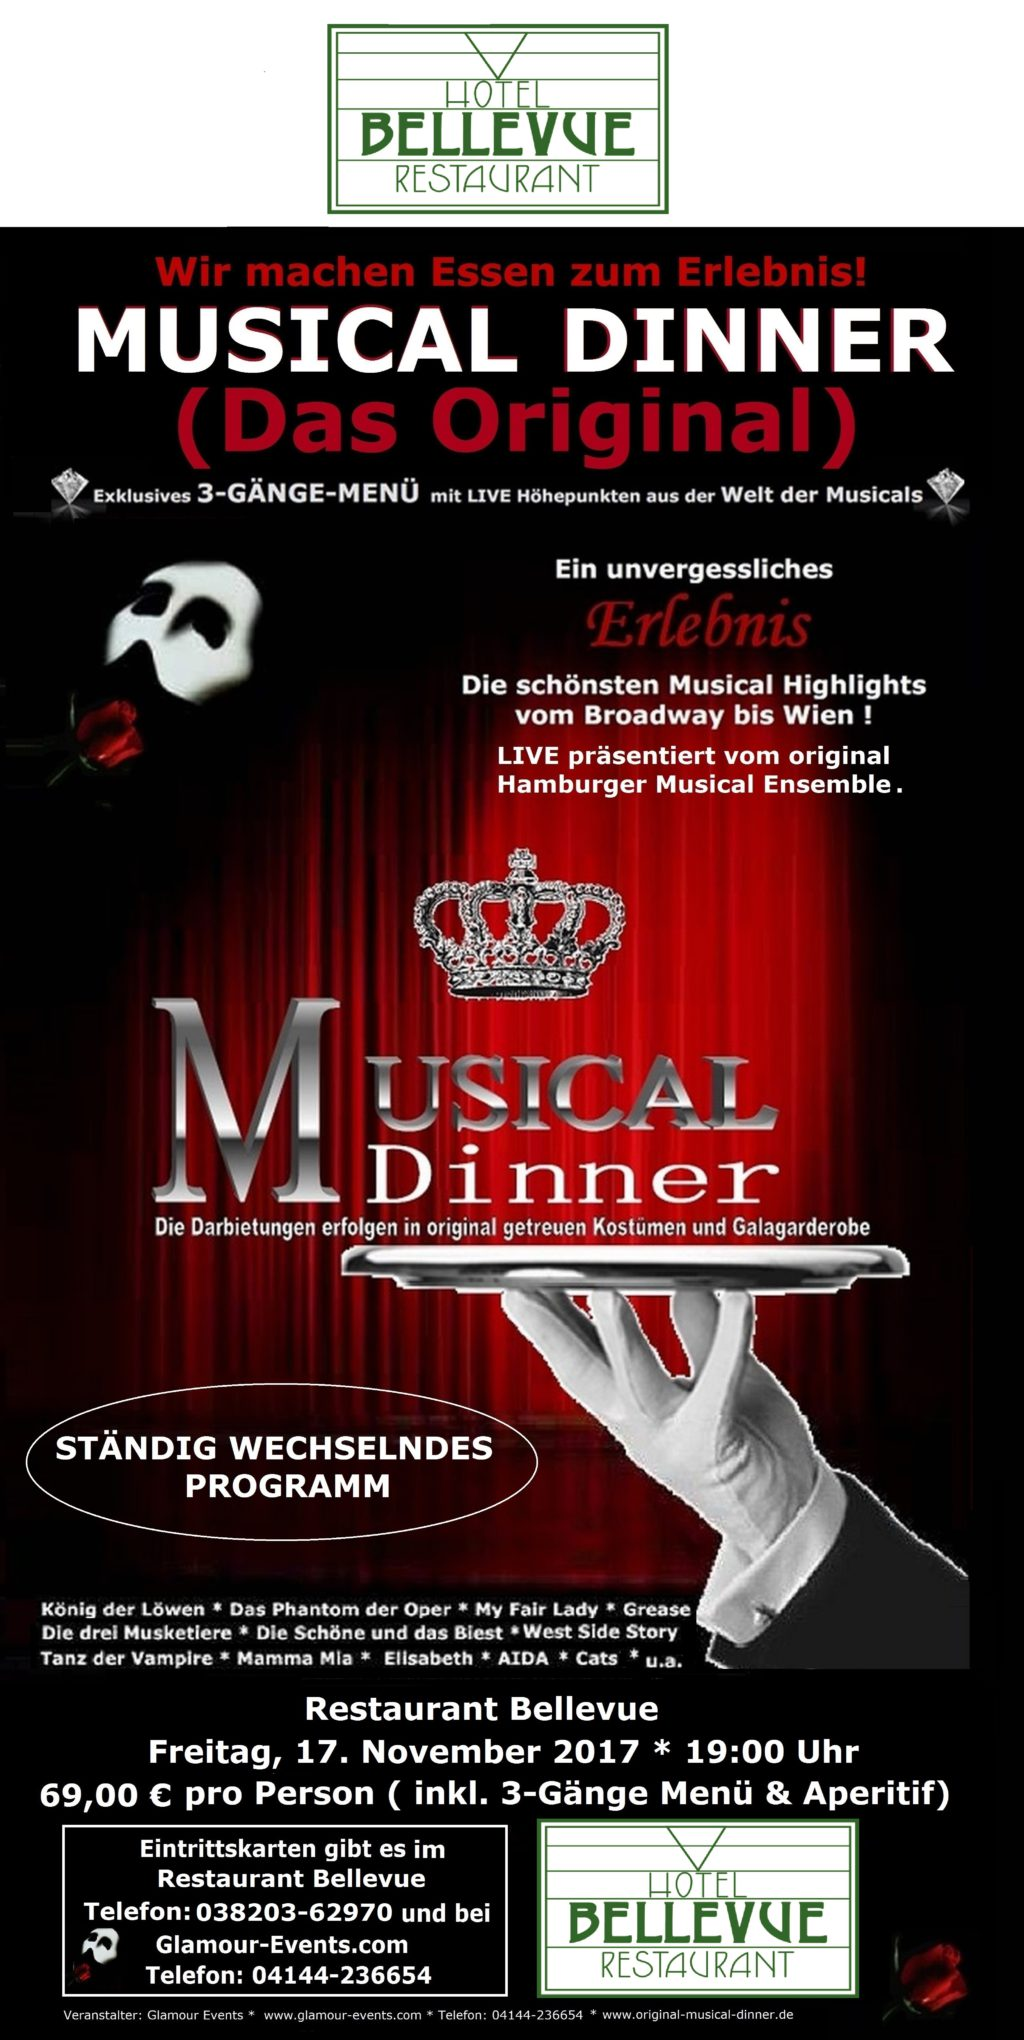 Musical Dinner Flyer Restaurant Bellevue